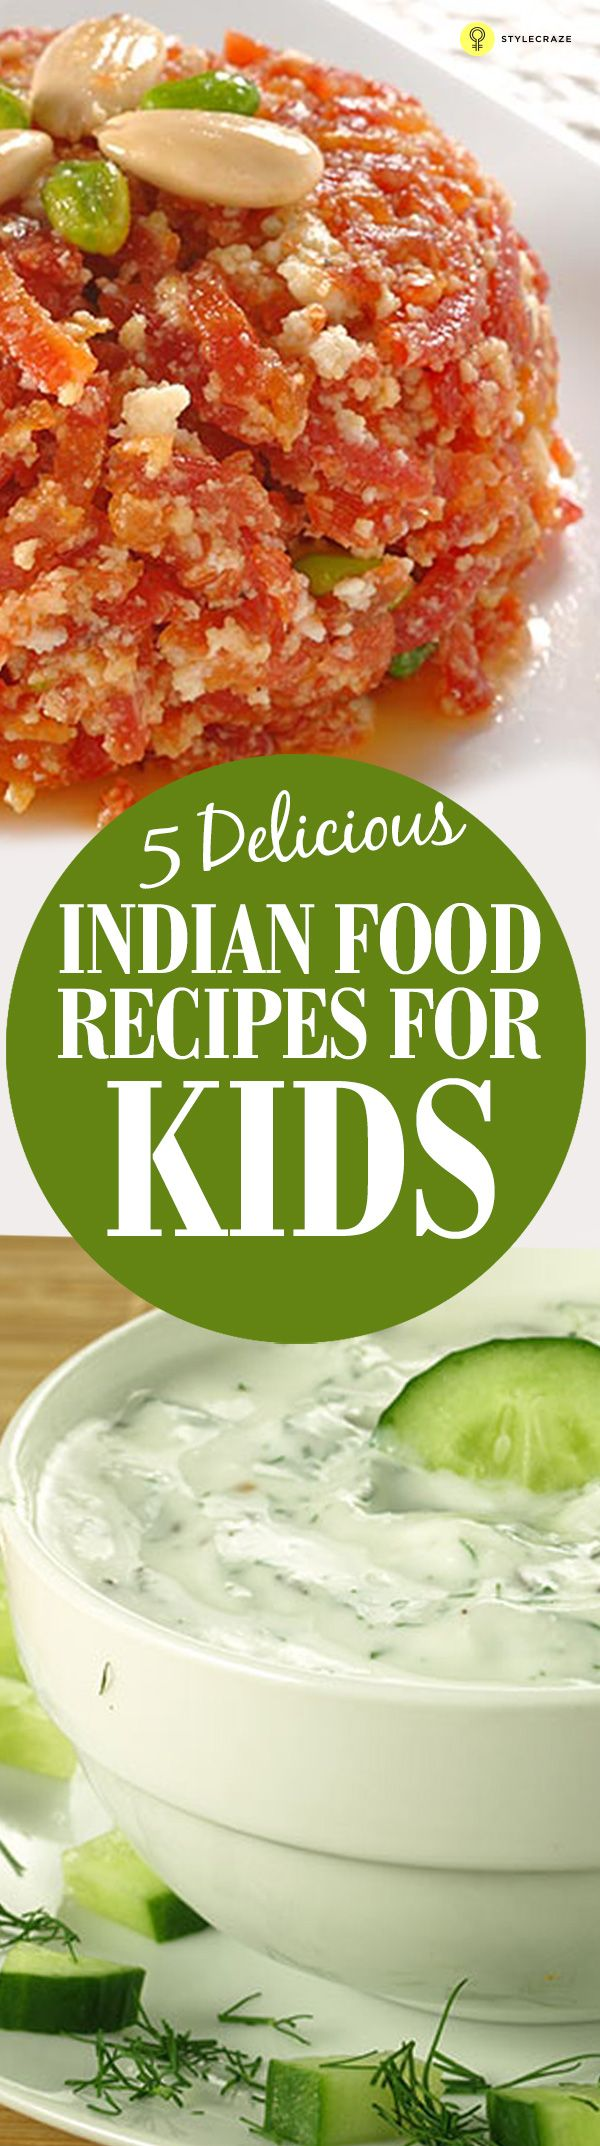 Indian Food Recipes For Kids – Top 5